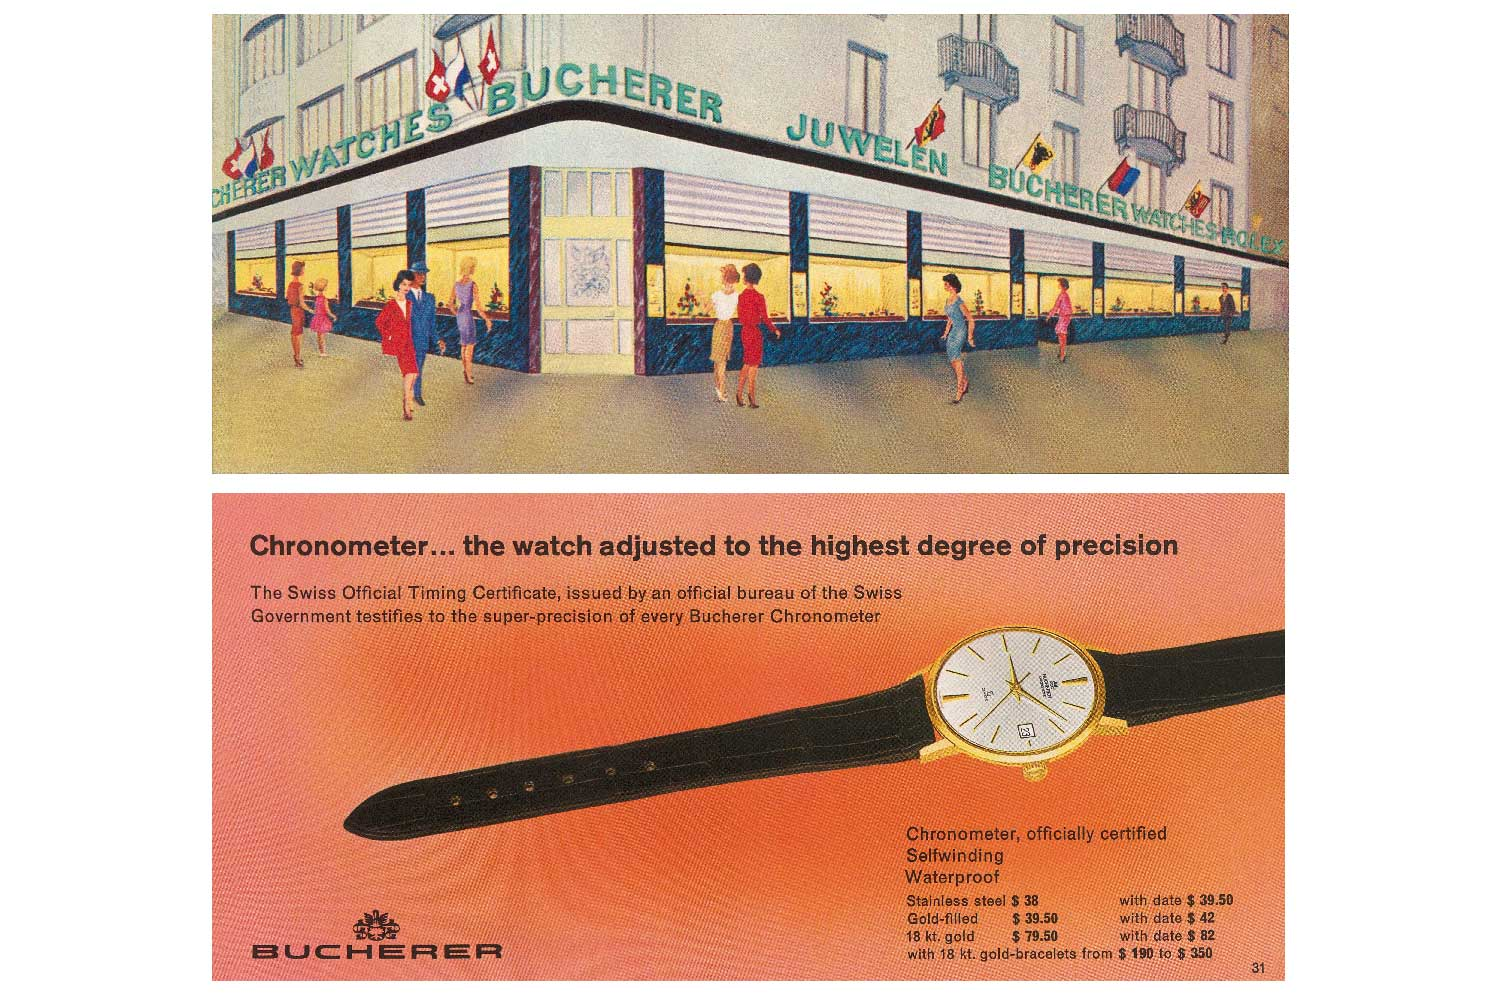 In the 1960s, Bucherer was specialising in the production of precision chronometers.